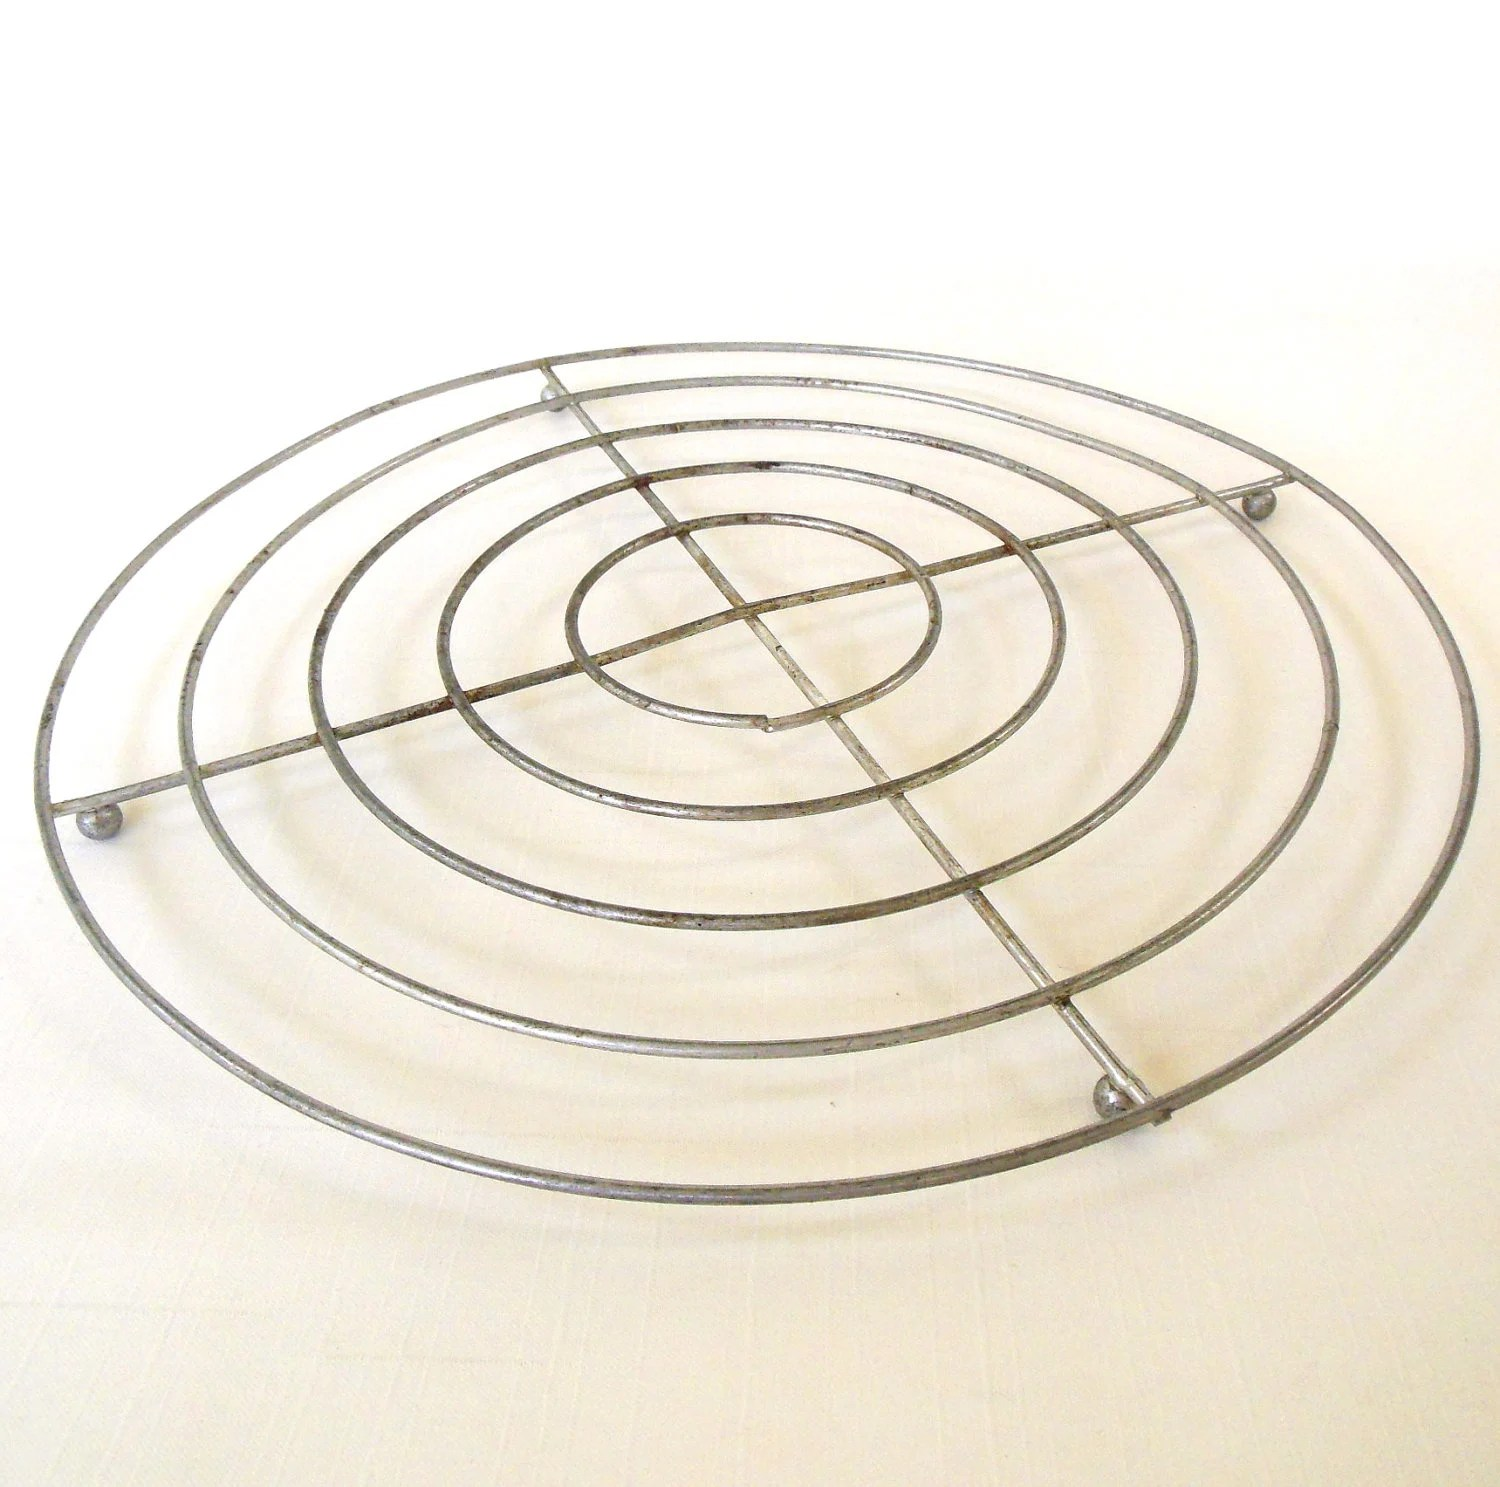 Round Wire Rack Canning Trivet Photo Prop 11 Vintage